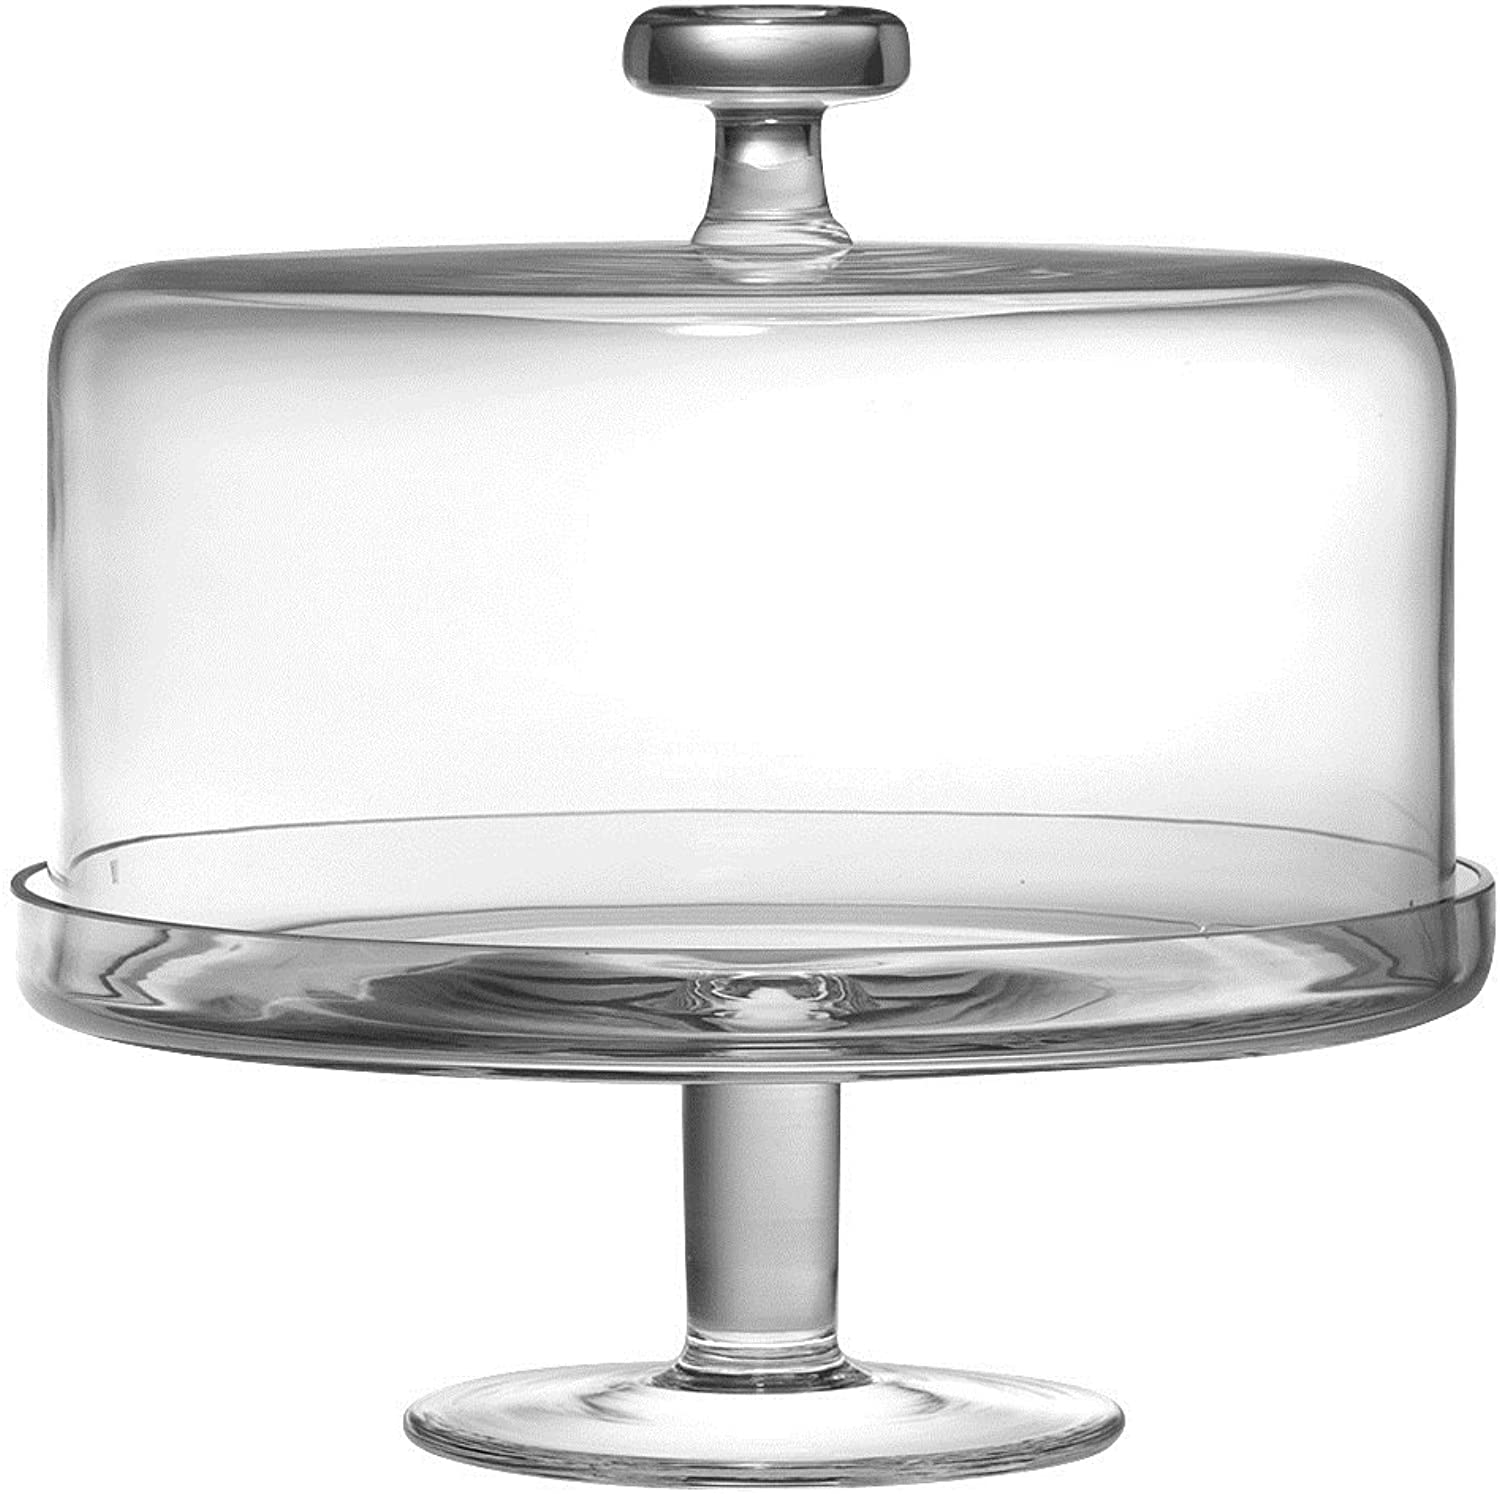 Barski Handmade Glass 2 pc Set , Footed Cake Plate with Dome, 12 H, 11 D (inside dome is 10.25 D), Clear , Made in Europe